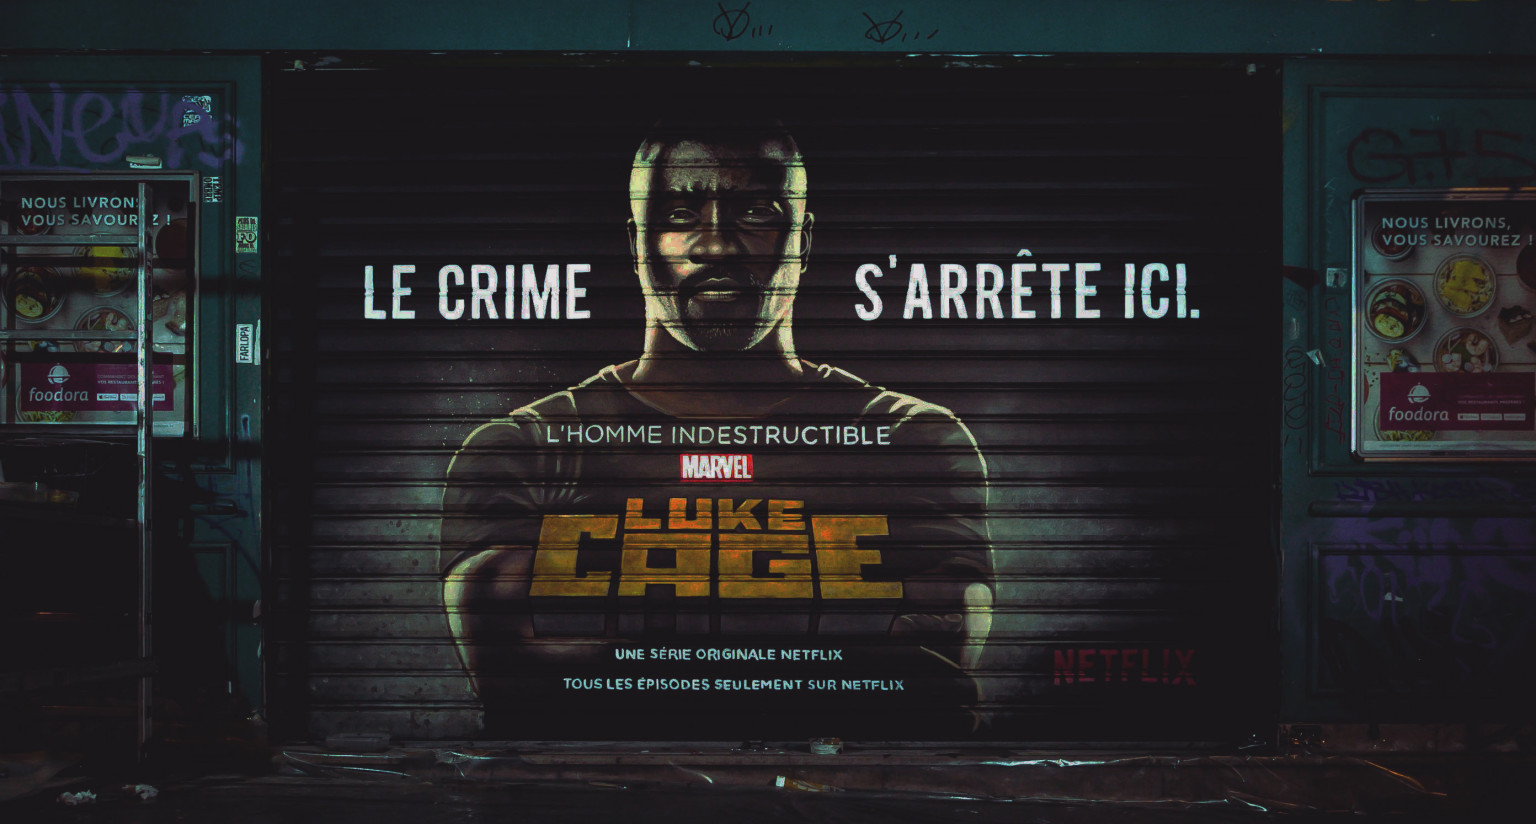 Luke Cage's Cages